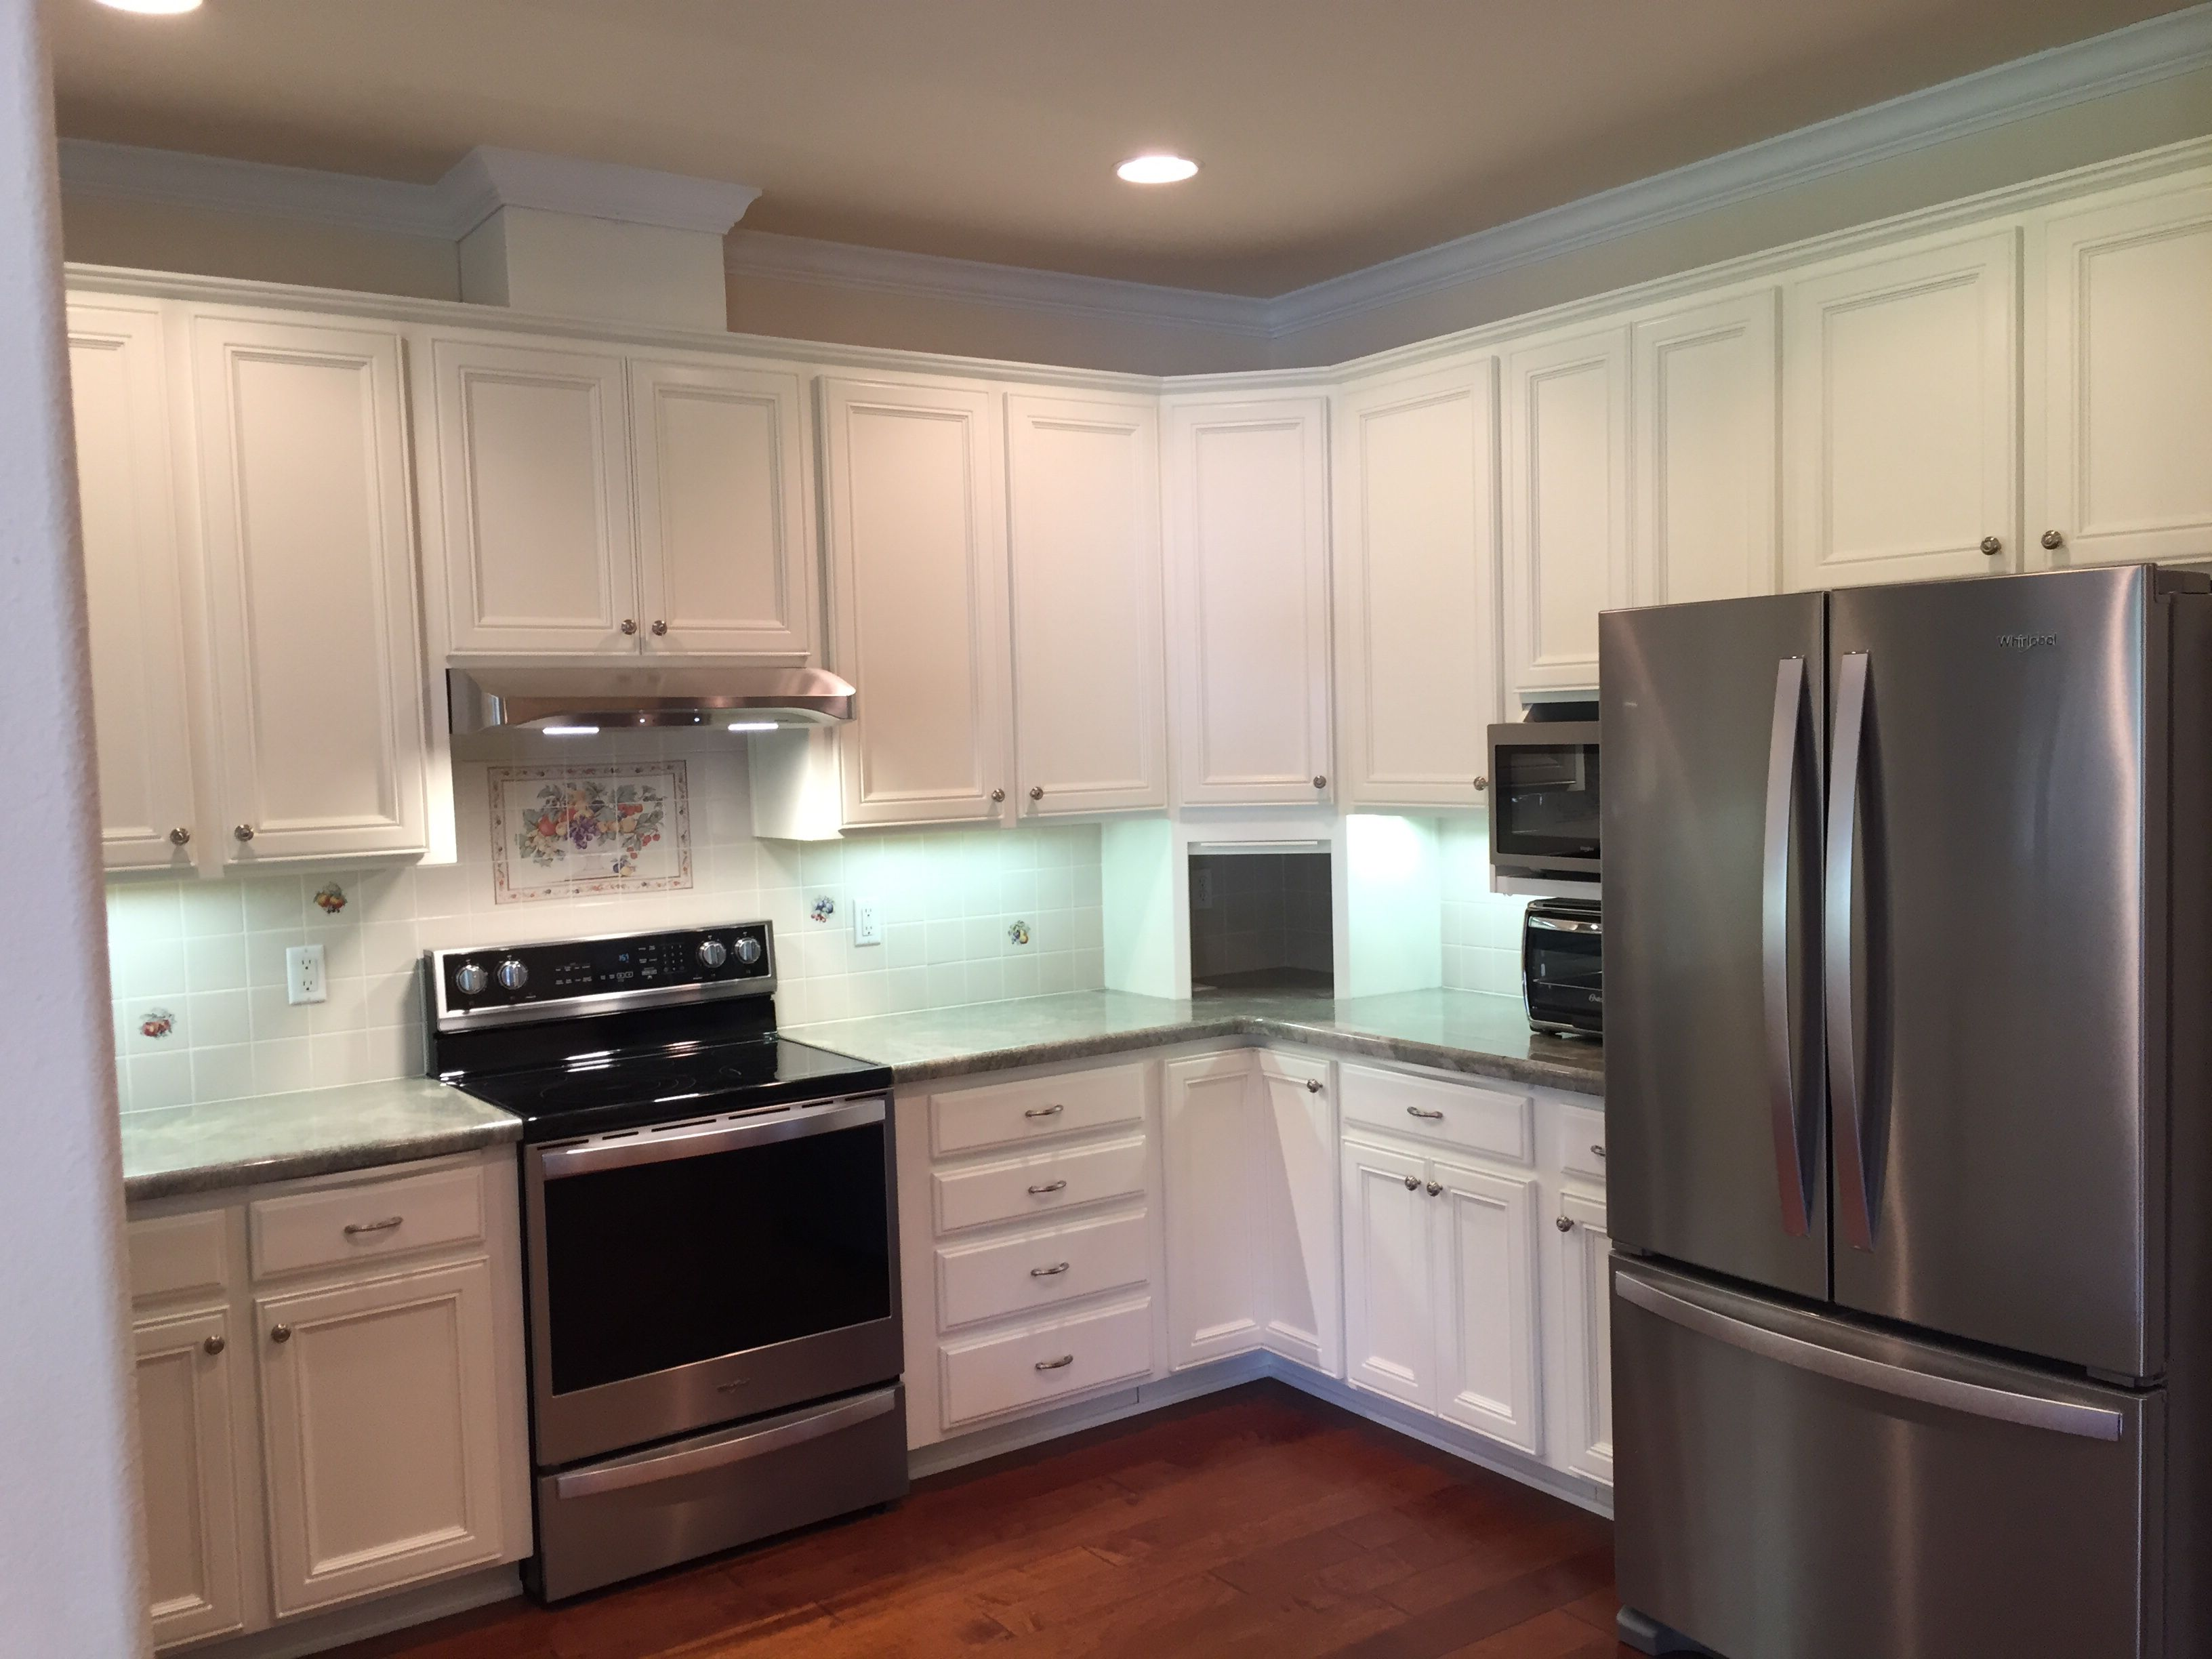 Tired Of The Old Worn Out Look Don T Replace Your Cabinets That S Way Too Expensive Renew Your Space And Increase Th Kitchen On A Budget Kitchen Diy Kitchen